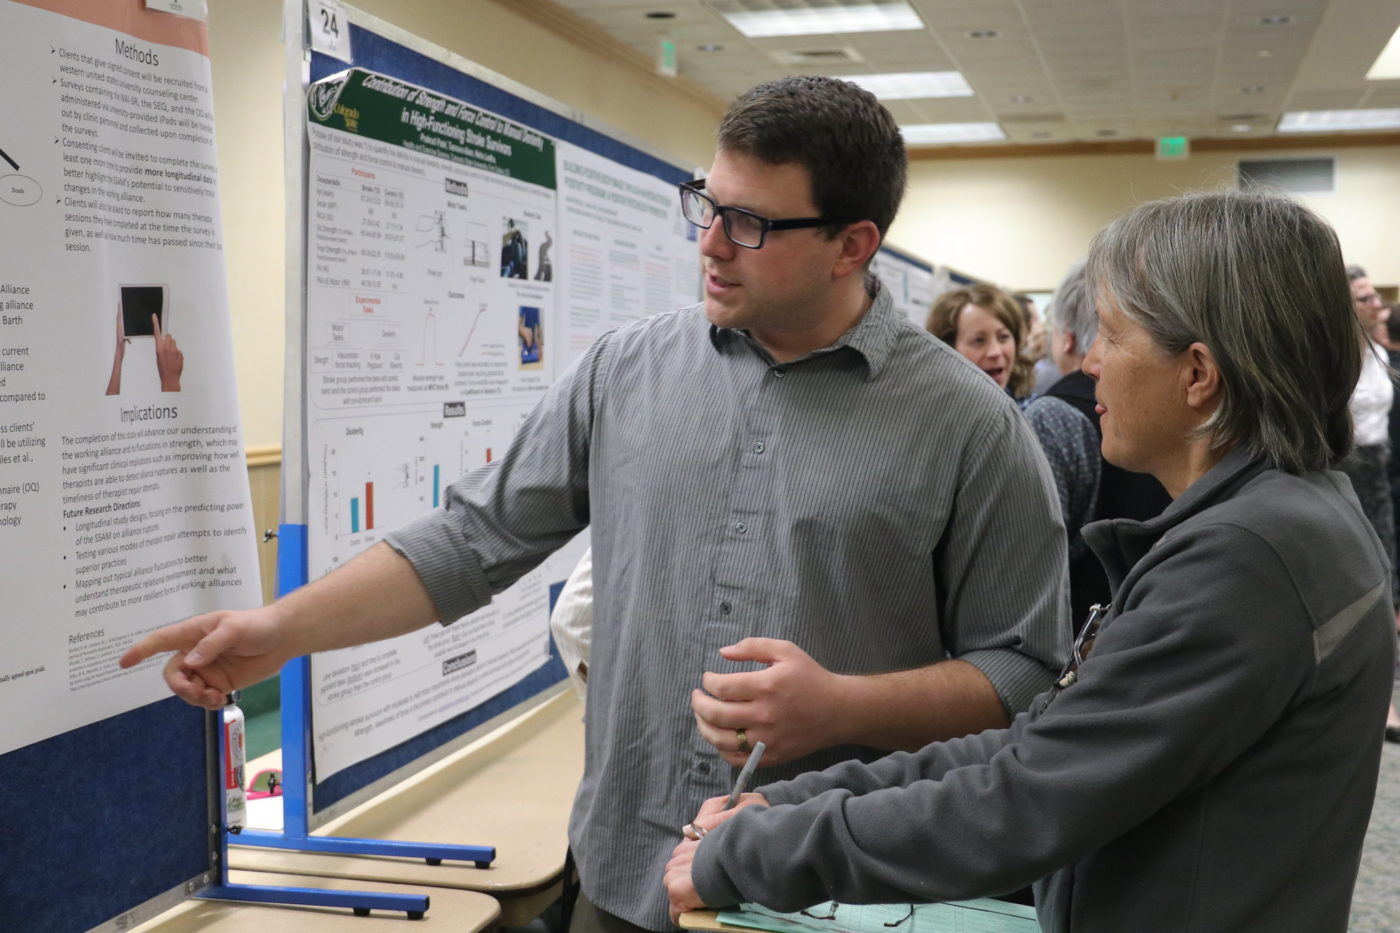 The Colorado State University College of Health and Human Sciences celebrates the variety and quality of research and creative scholarship by the college's students, faculty, and staff at its first annual Research Day, March 10, 2020.